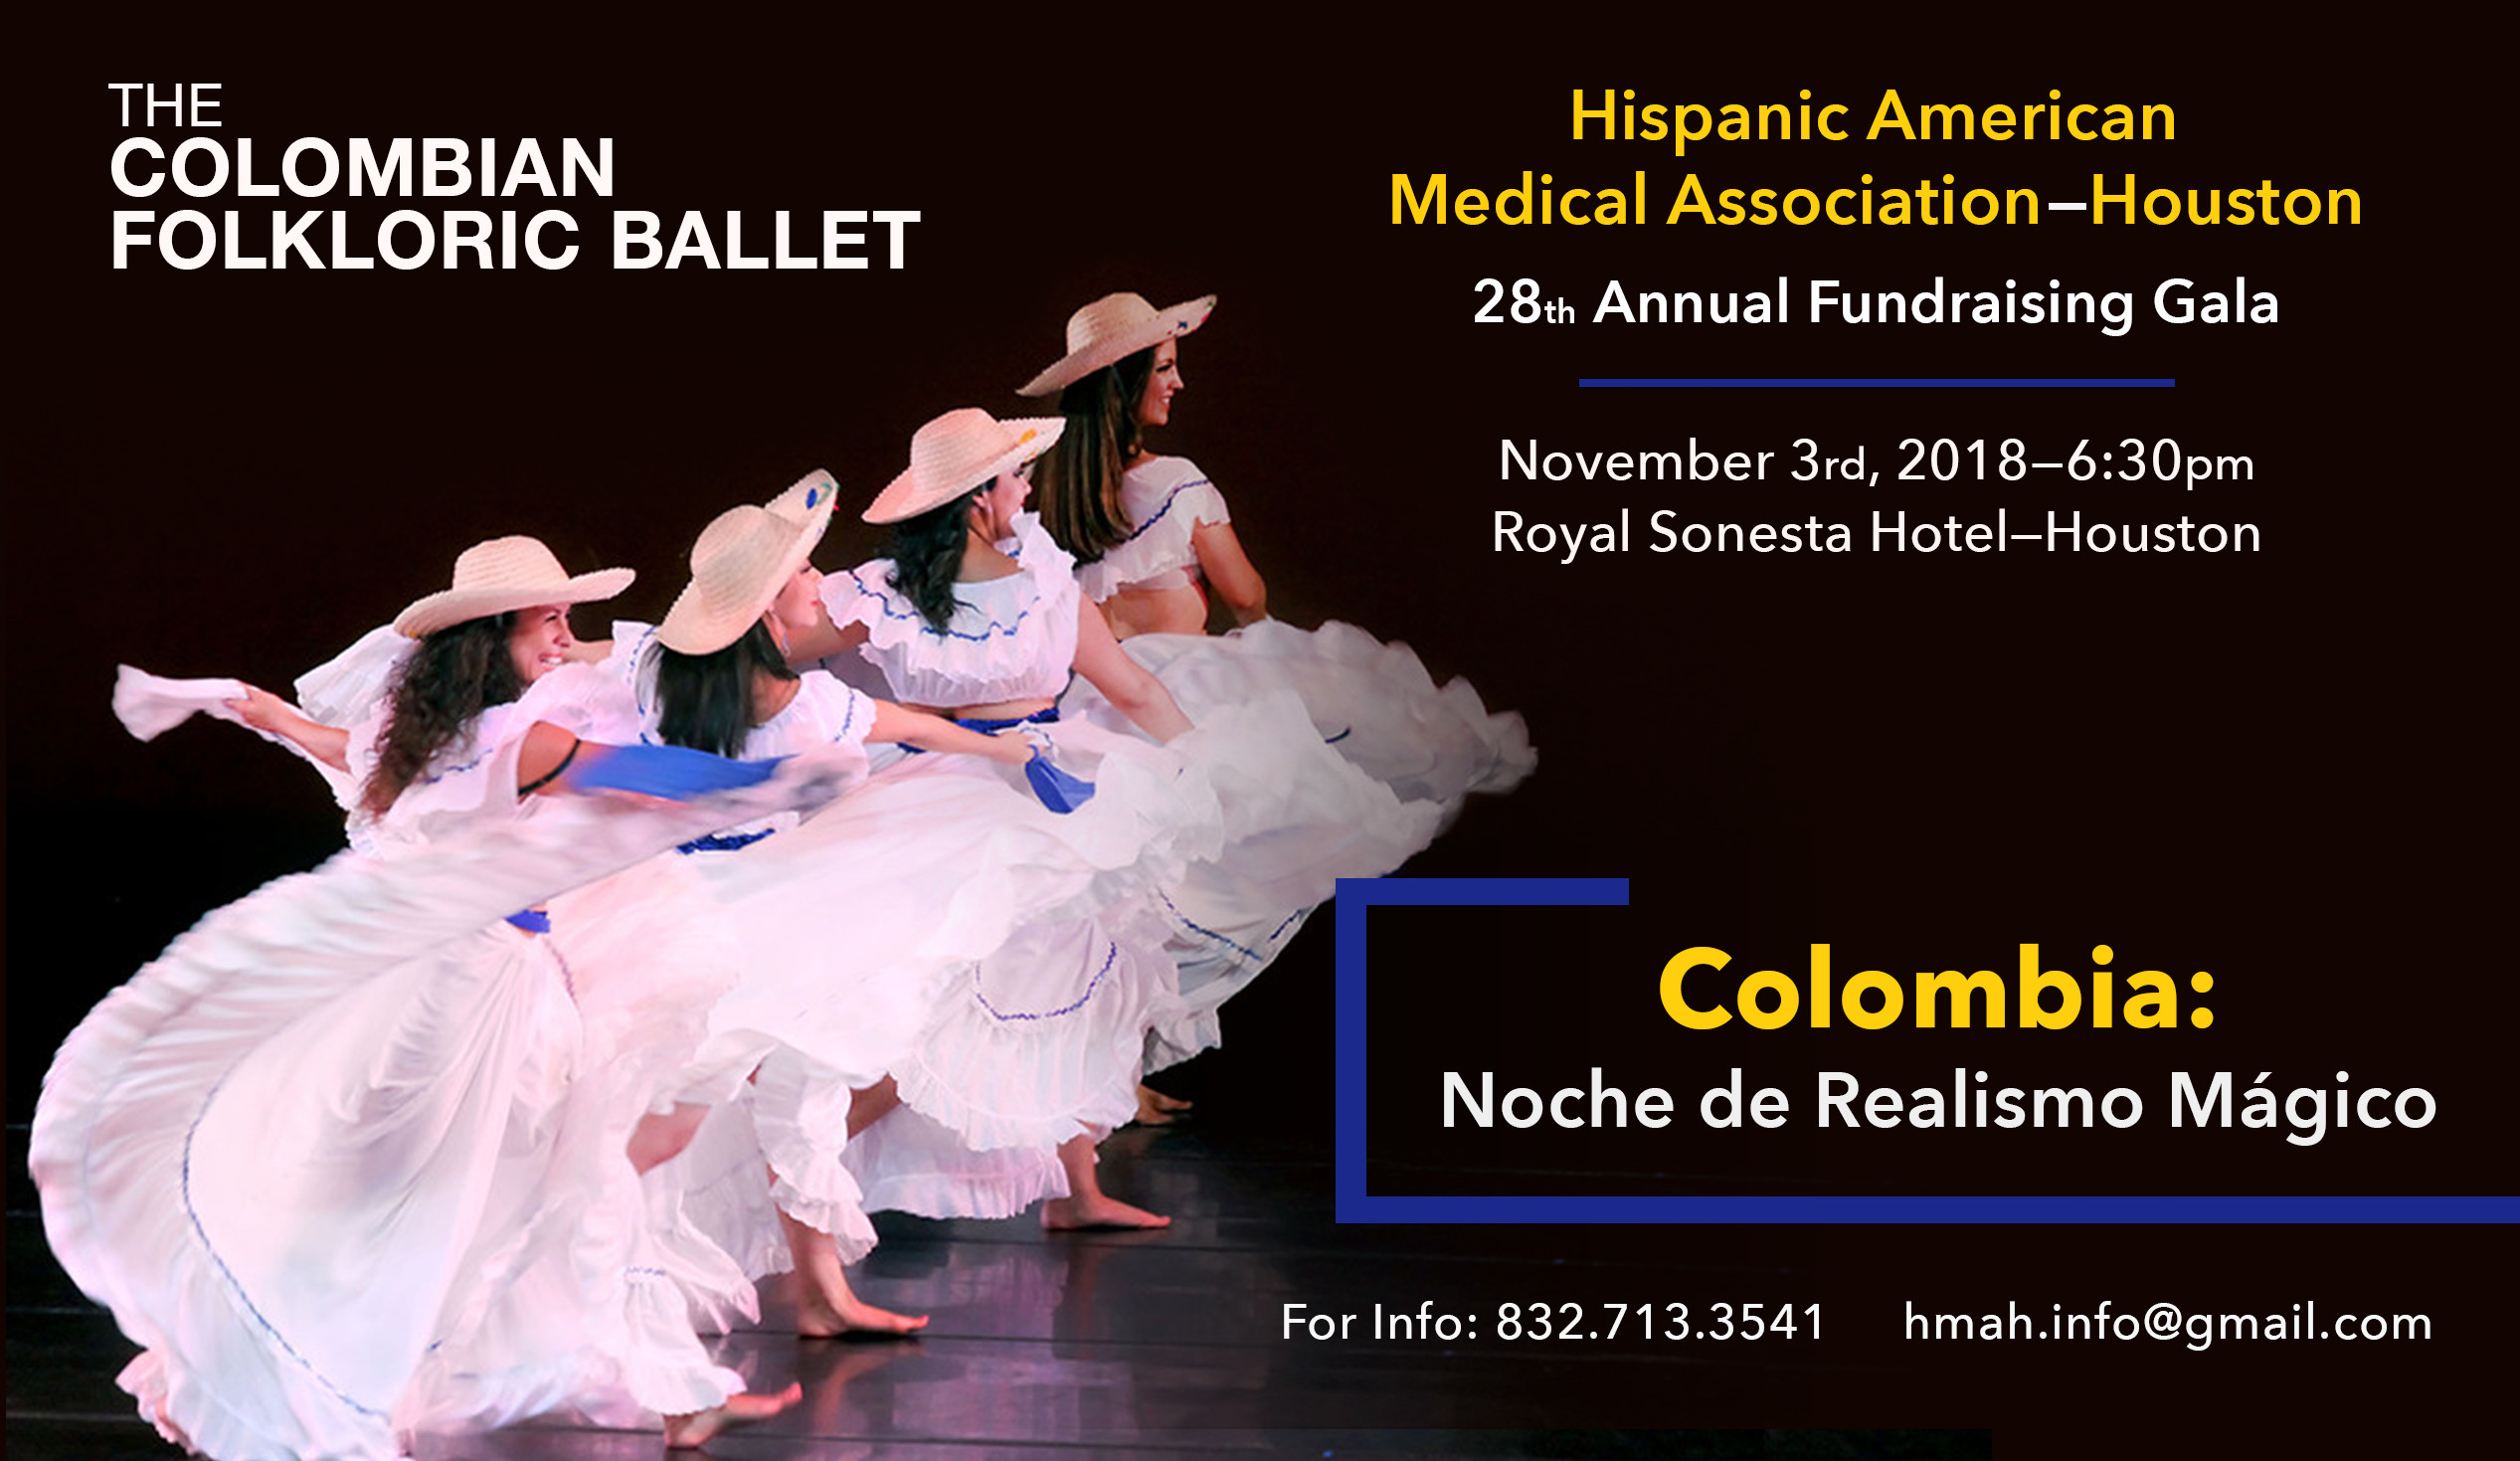 The Colombian Folkloric Ballet. Colombia: Noche de Realismo Mágico. Hispanic American Medical Association—Houston 28th Annual Fundraising Gala